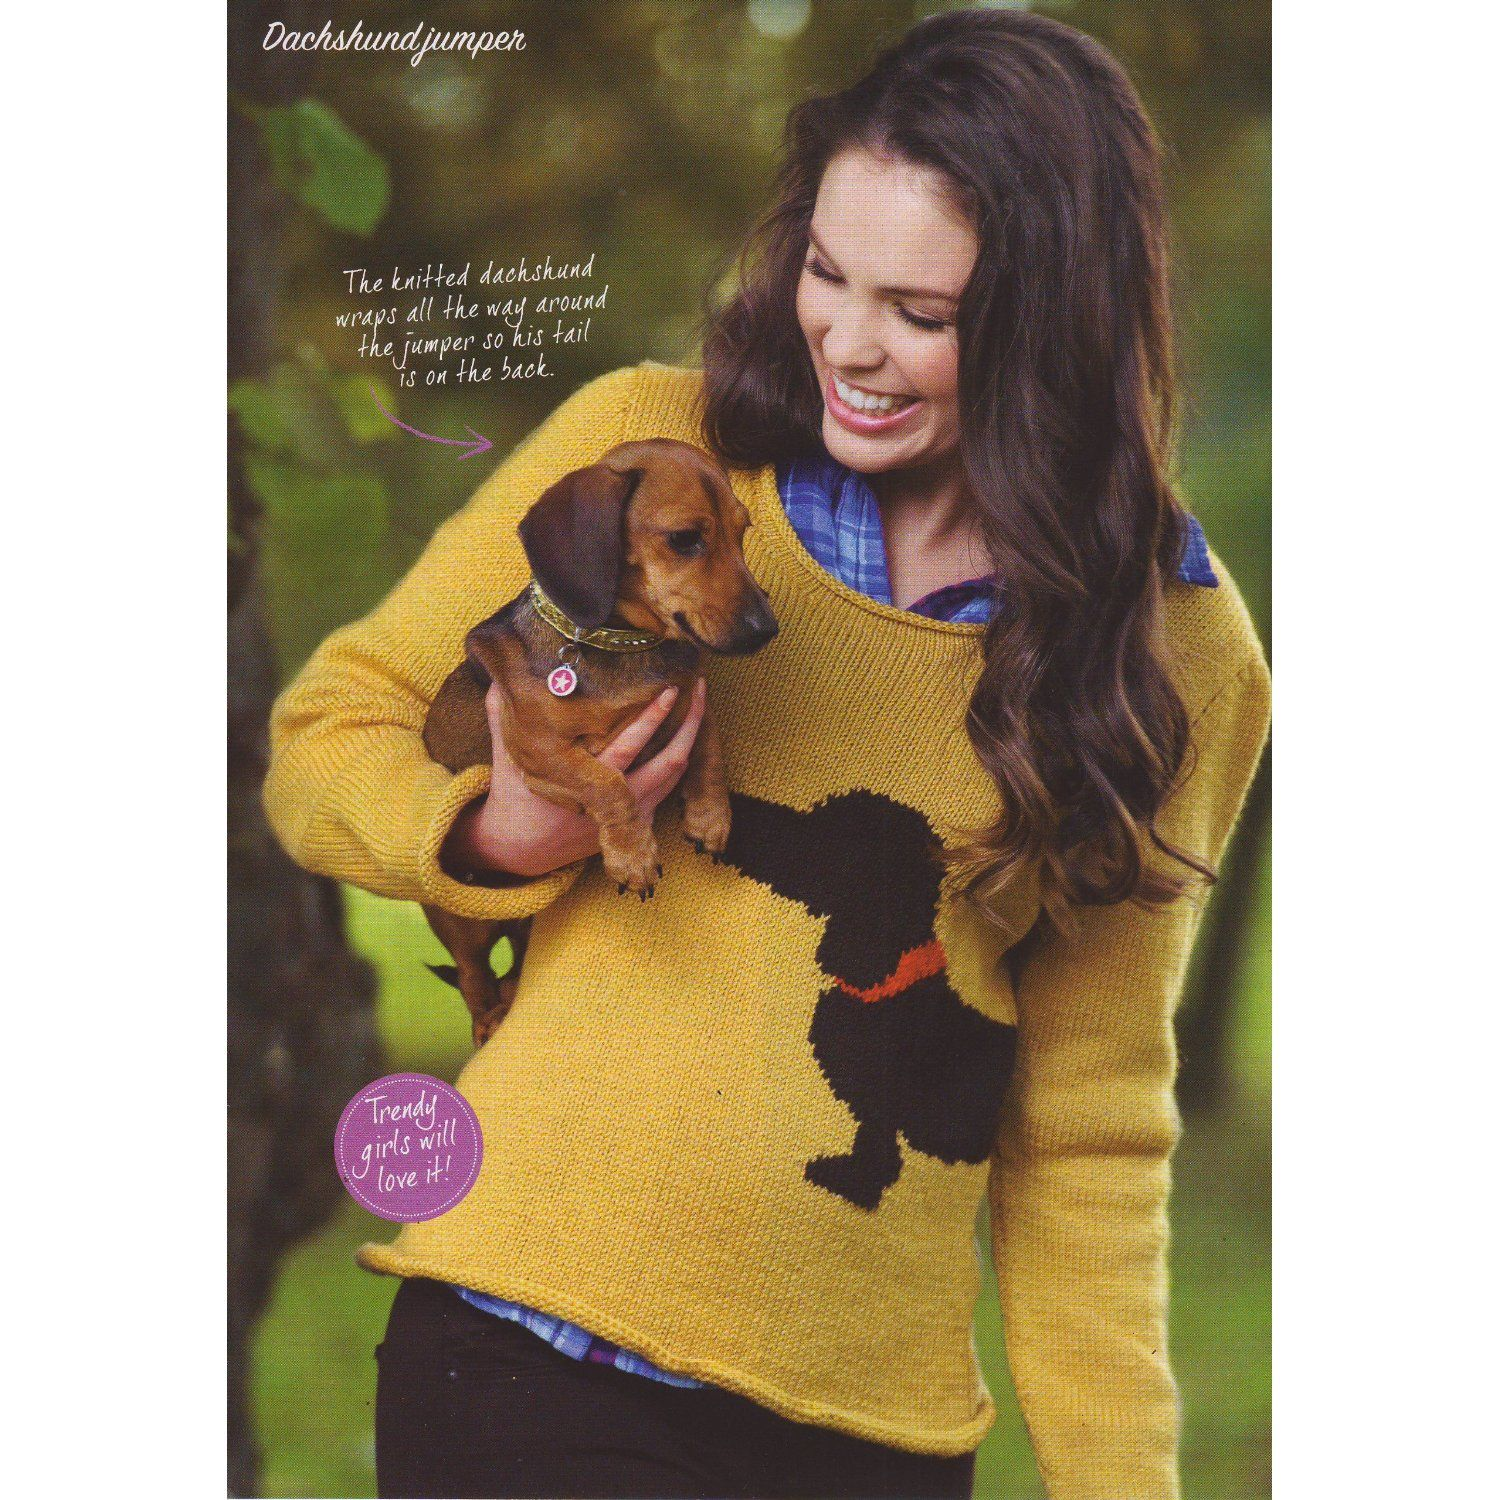 Womens dachshund dog motif jumper knitting pattern 8 sizes to fit womens dachshund dog motif jumper knitting pattern 8 sizes to fit bust or chest 32 bankloansurffo Gallery